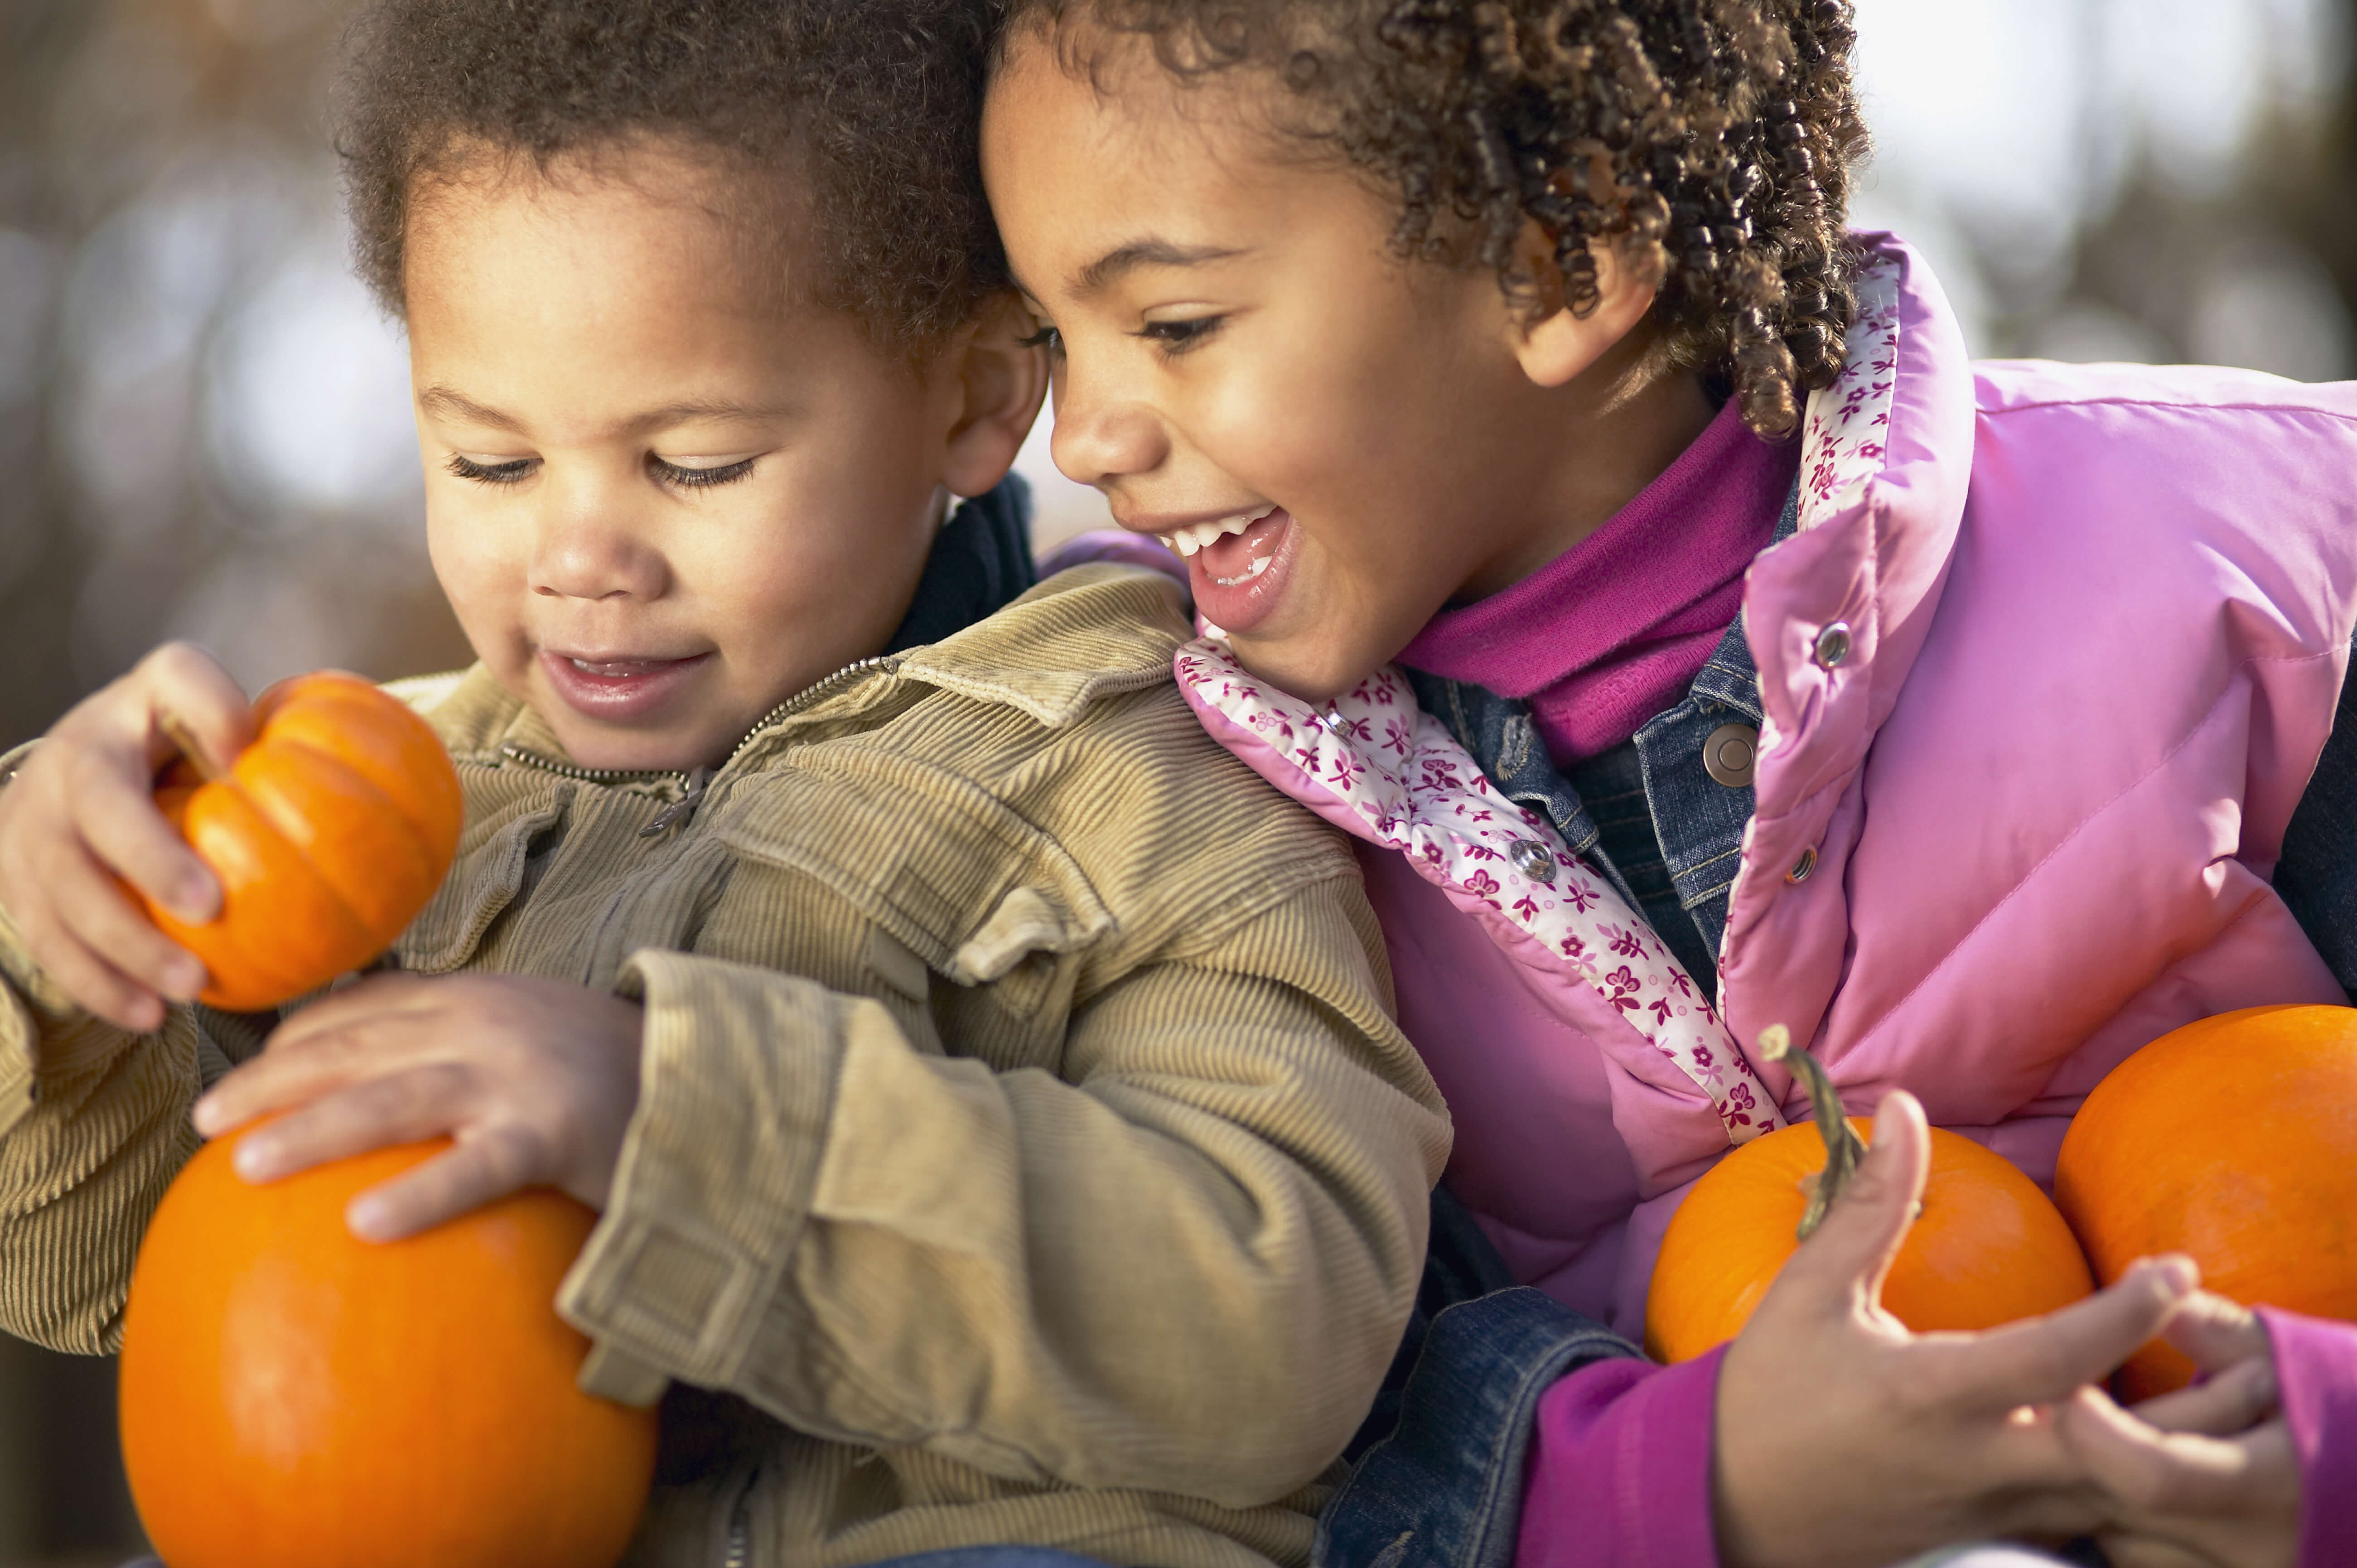 OUTDOOR FAMILY FUN: Pony Rides, Pumpkin Patch & More!